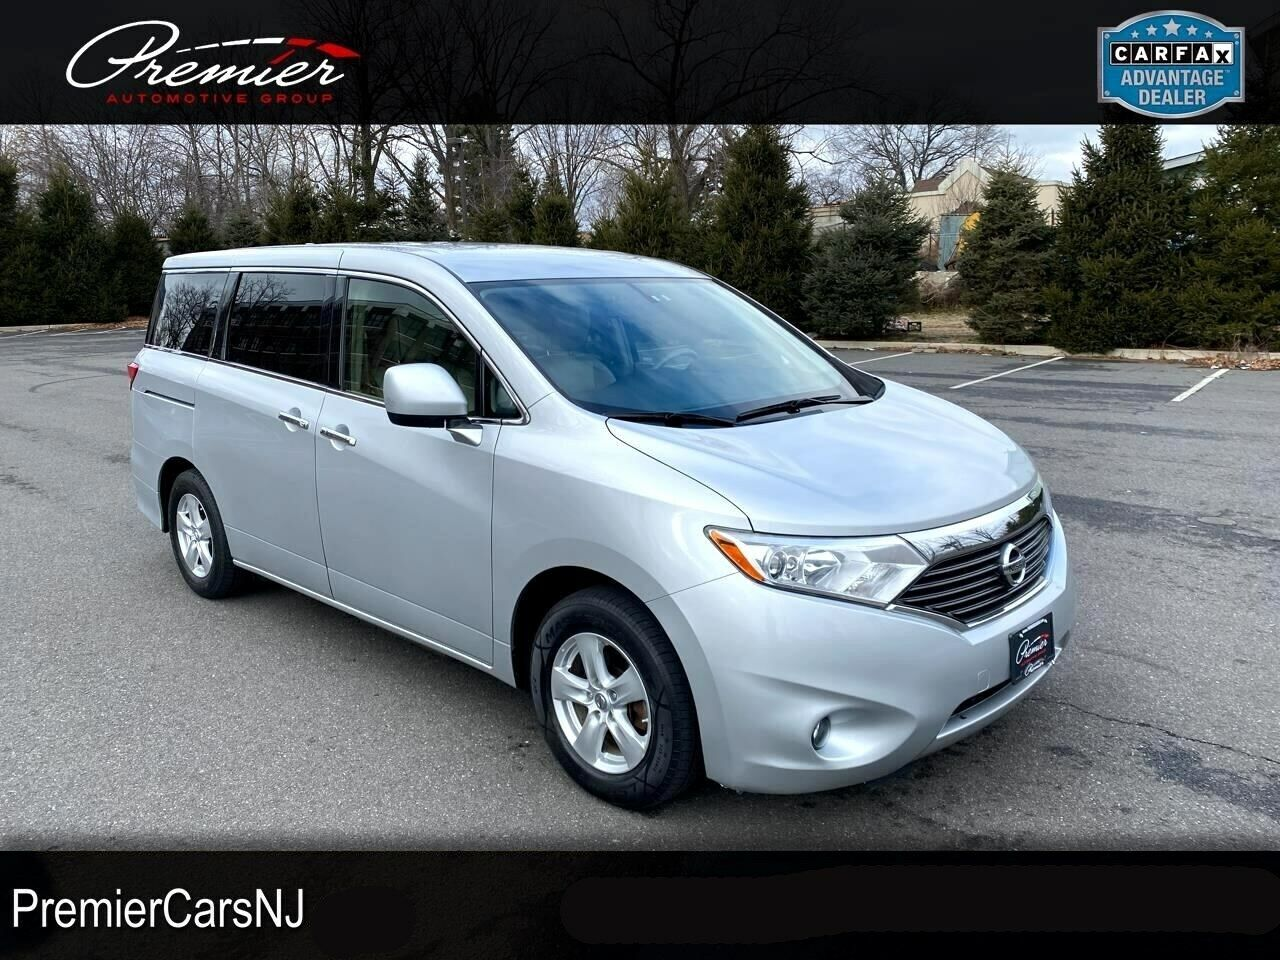 2013 Nissan Quest, Silver with 96513 Miles available now!